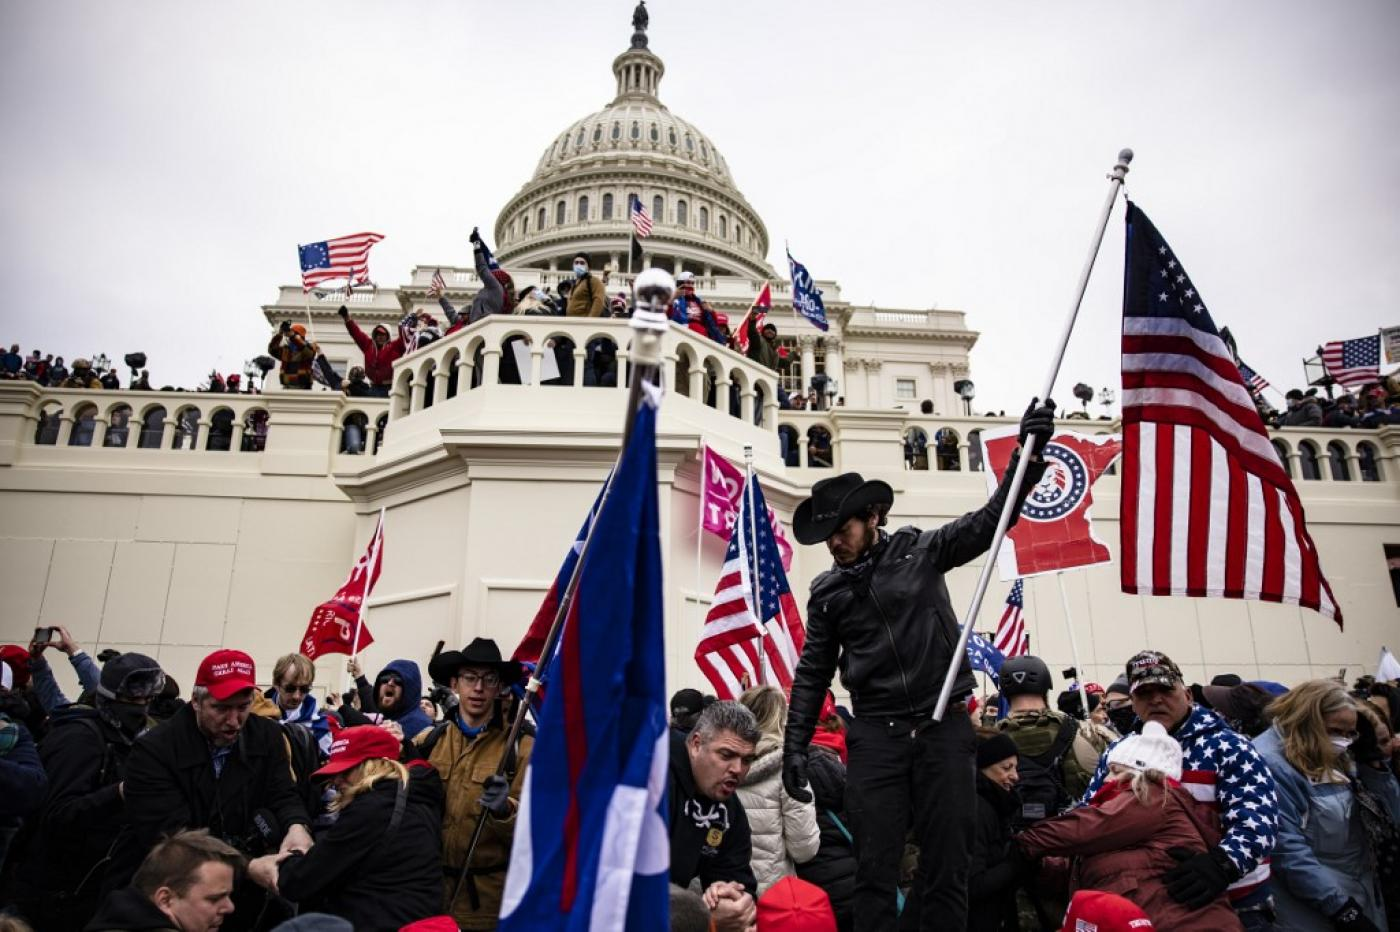 Hundreds of Trump supporters stormed the US Capitol building last week.